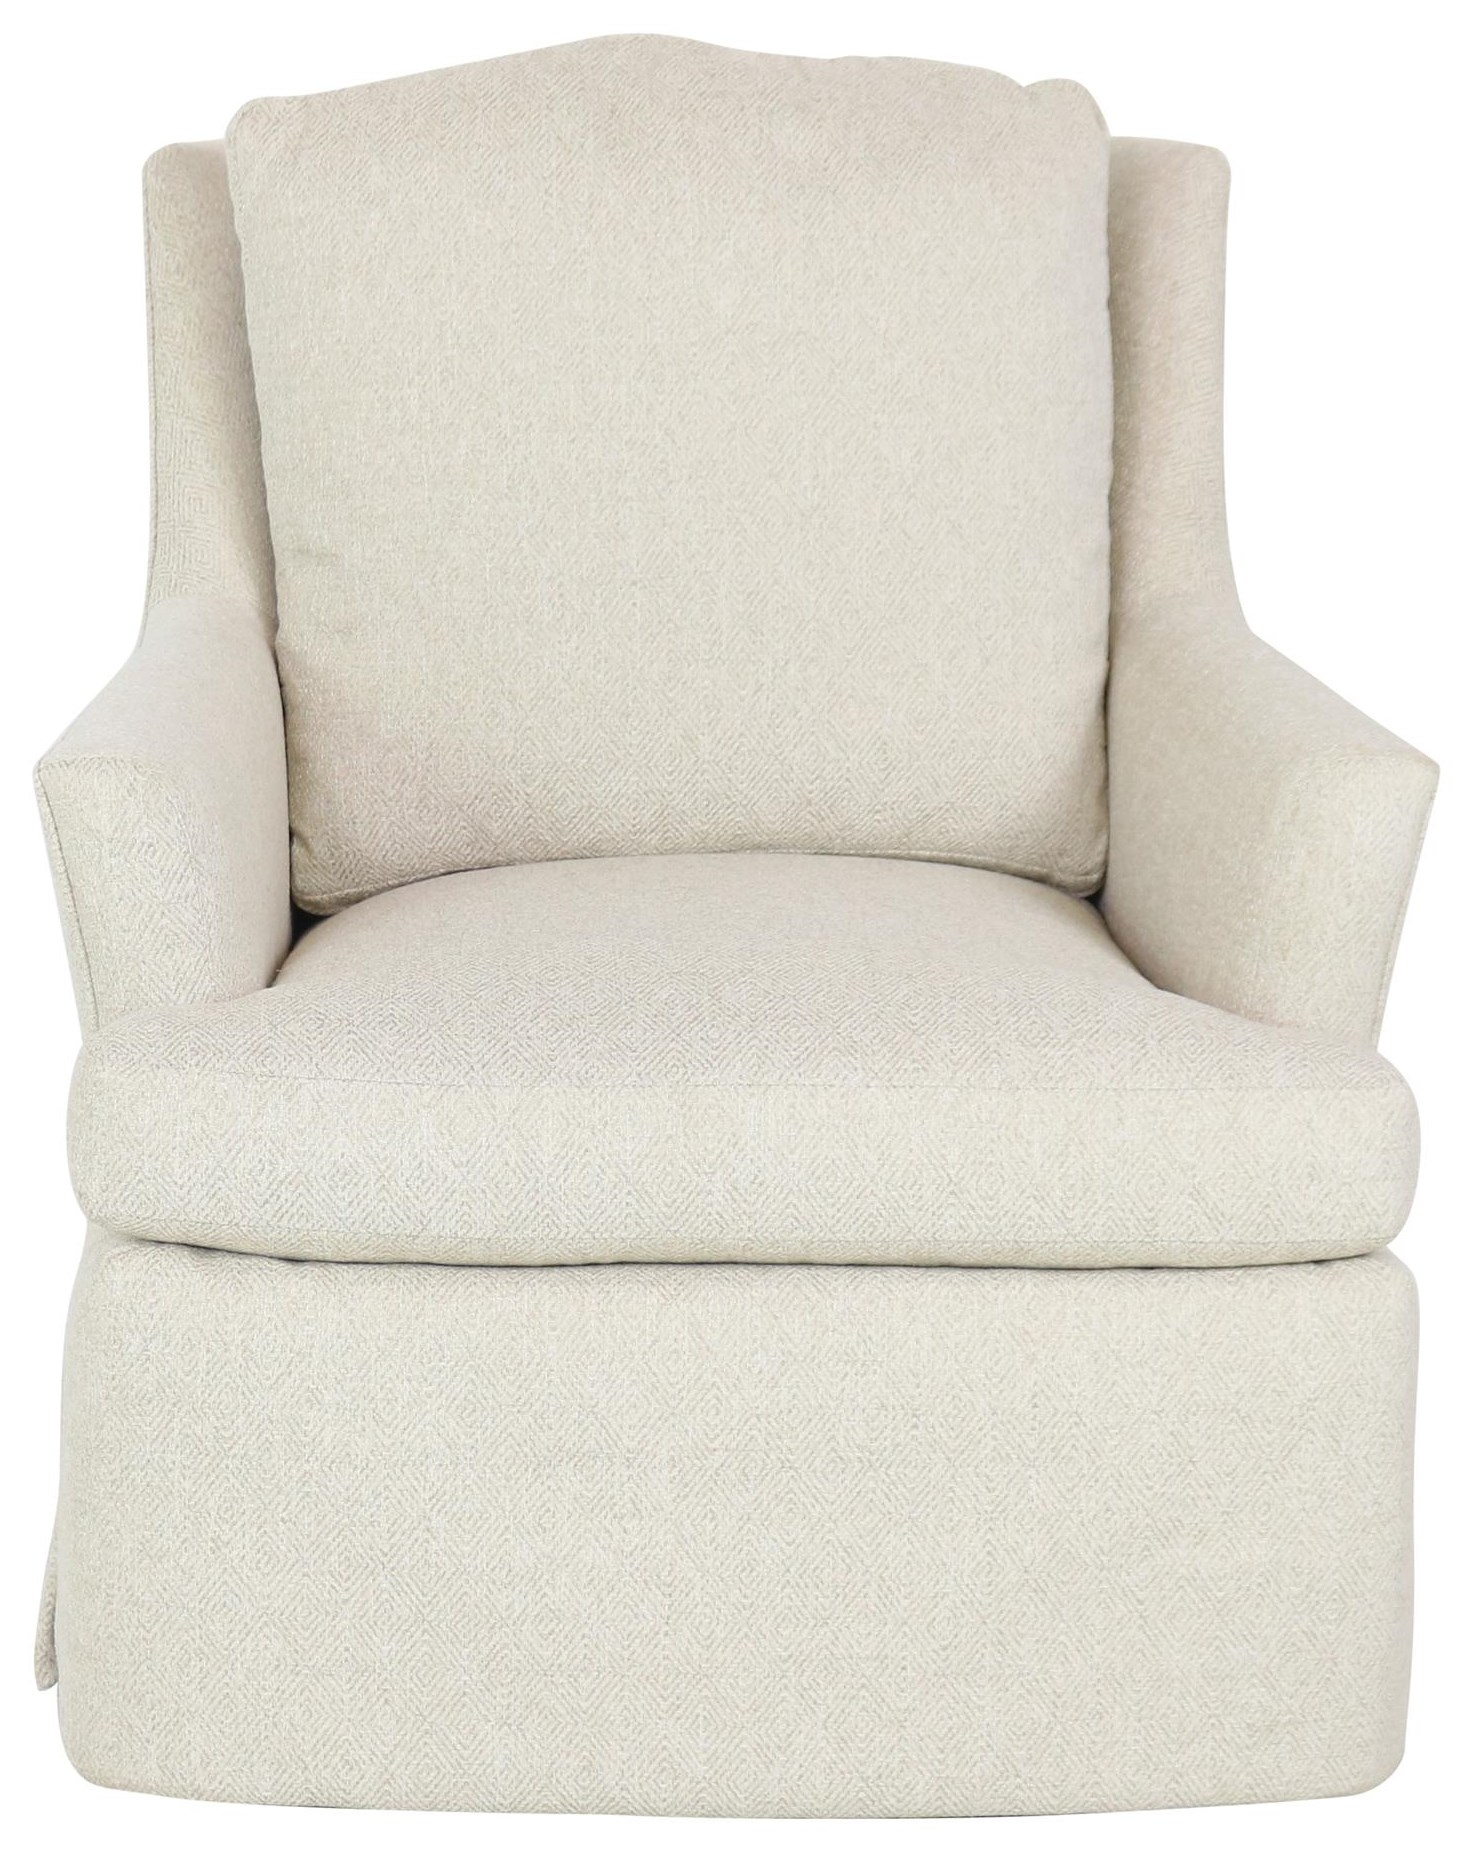 Fine Upholstered Accents Swivel Rocker Chair by Jessica Charles at Sprintz Furniture